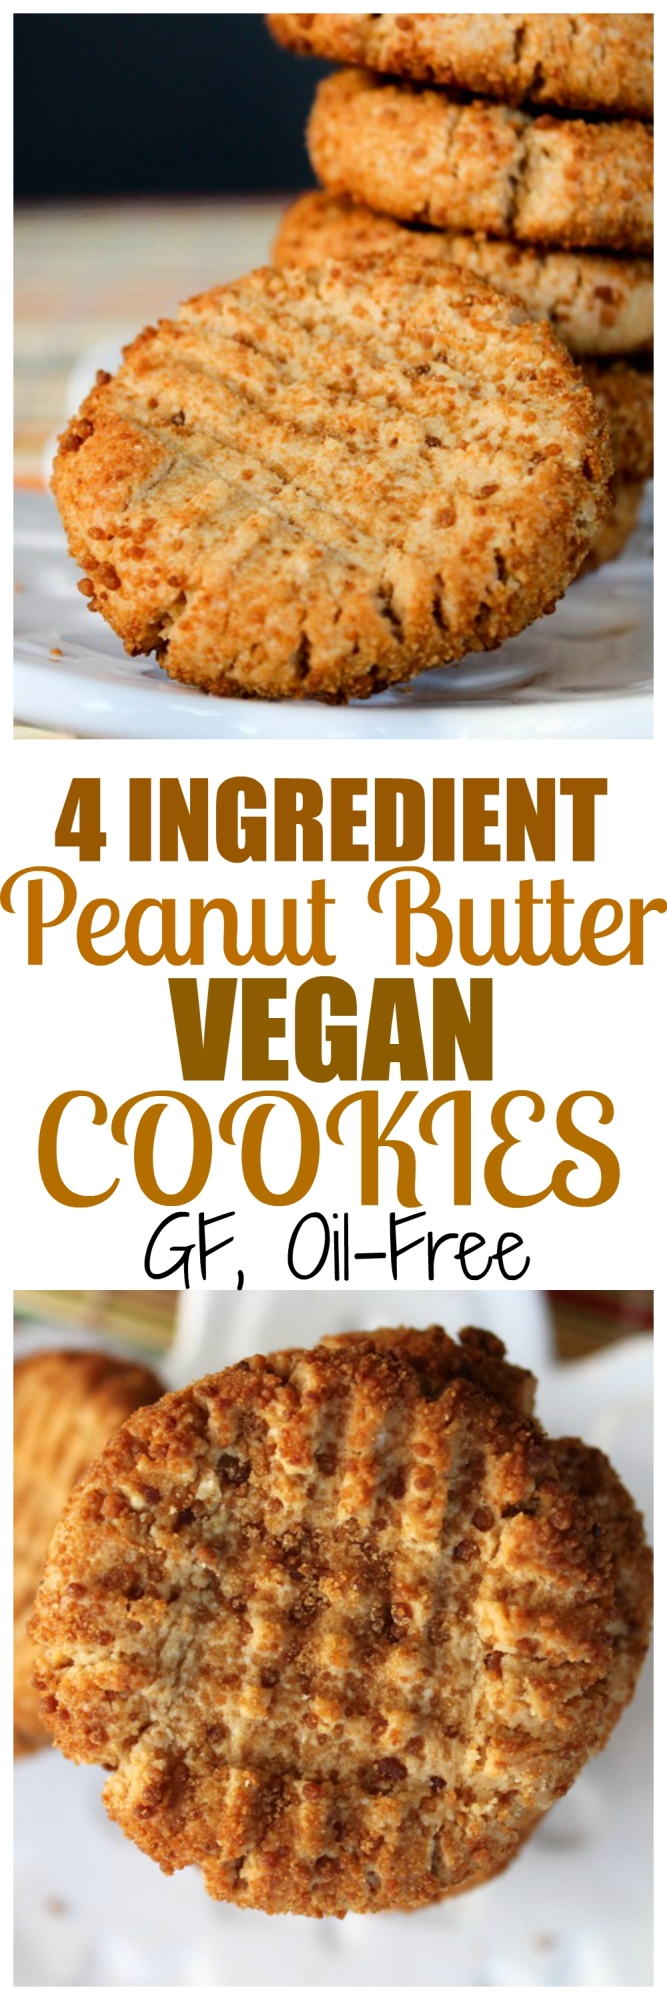 Vegan cookie recipes with almond flour